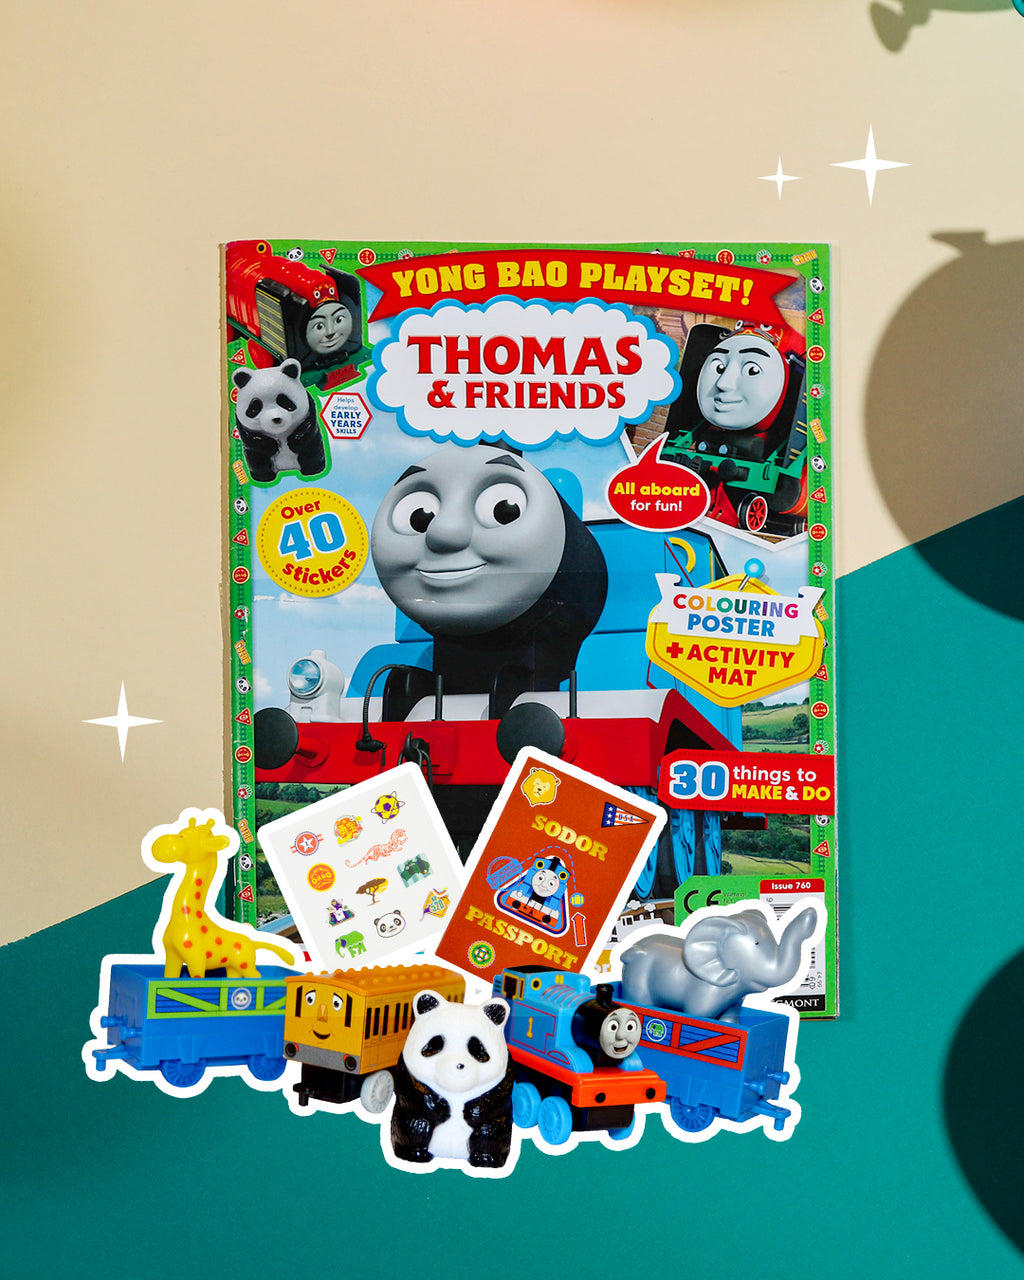 Thomas & Friends magazine and limited edition playset